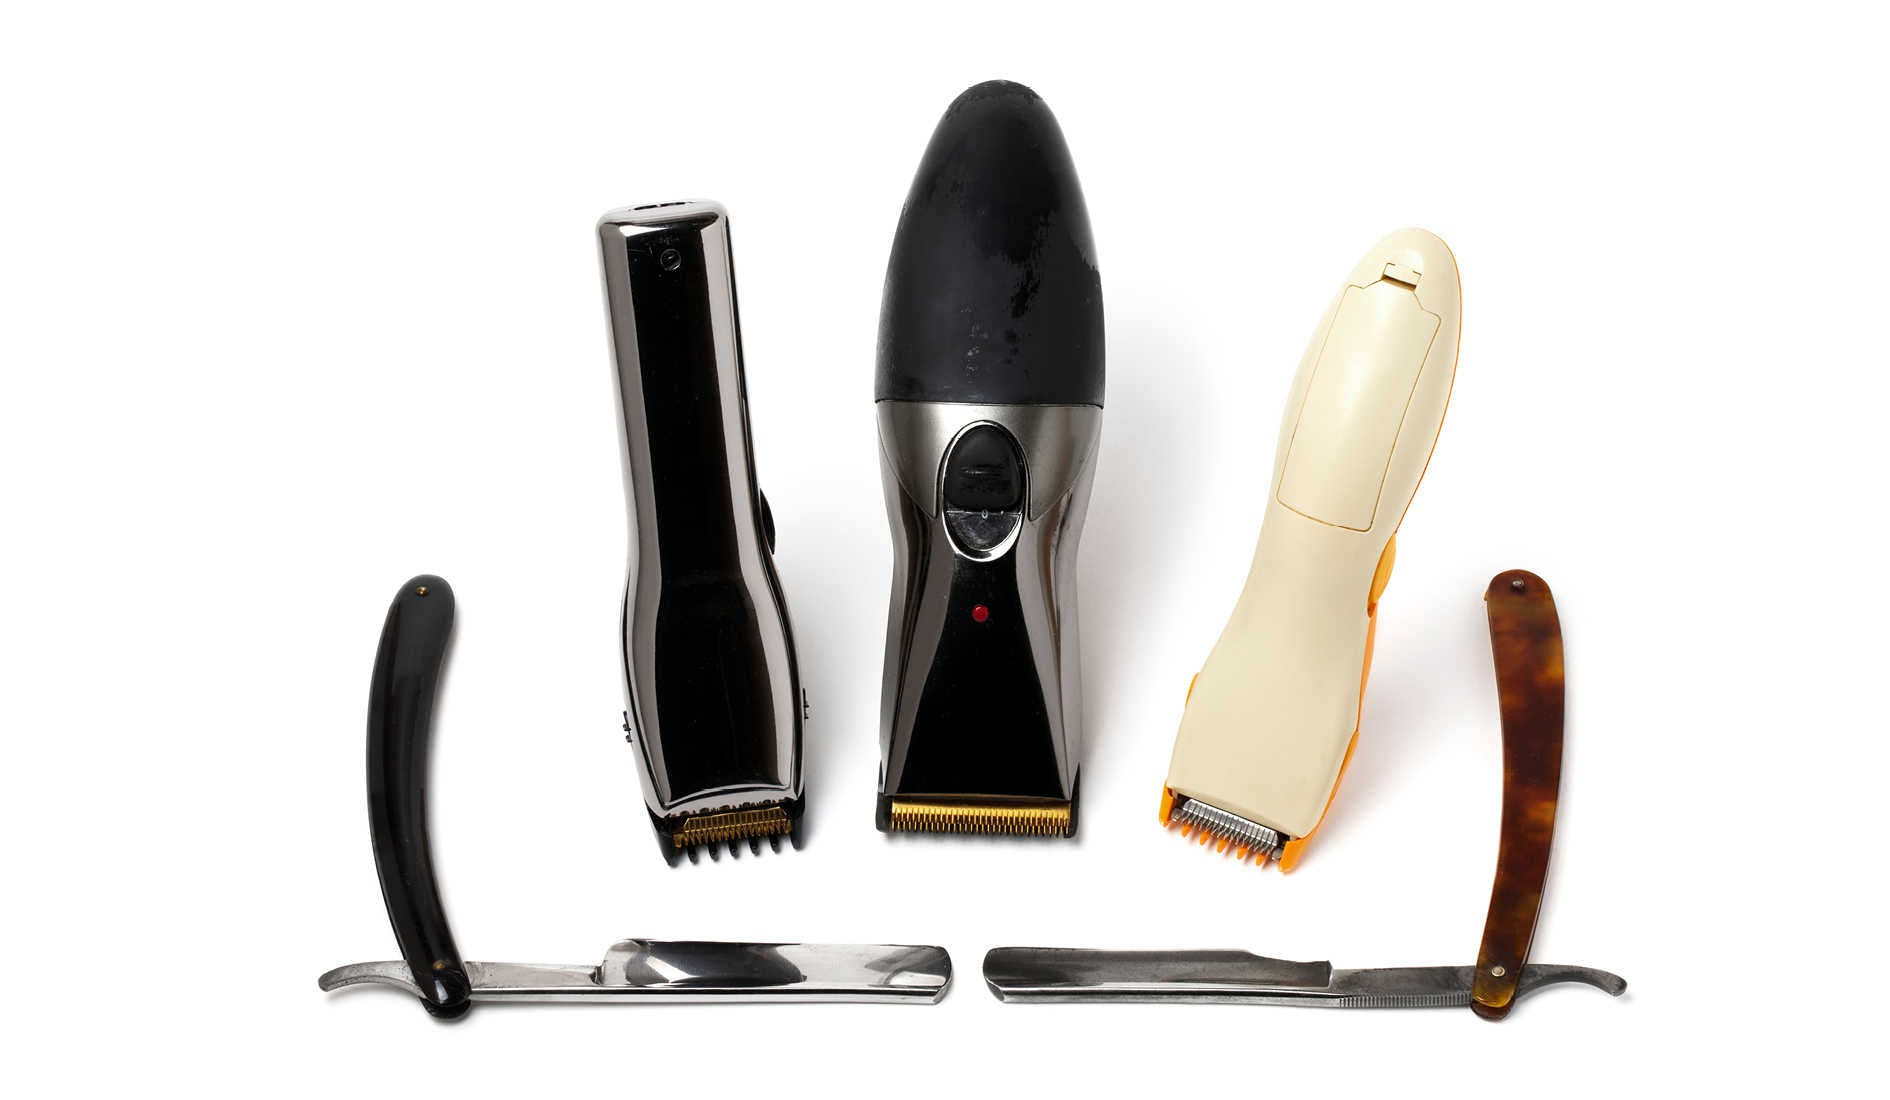 Shavkng razors and electric clippers